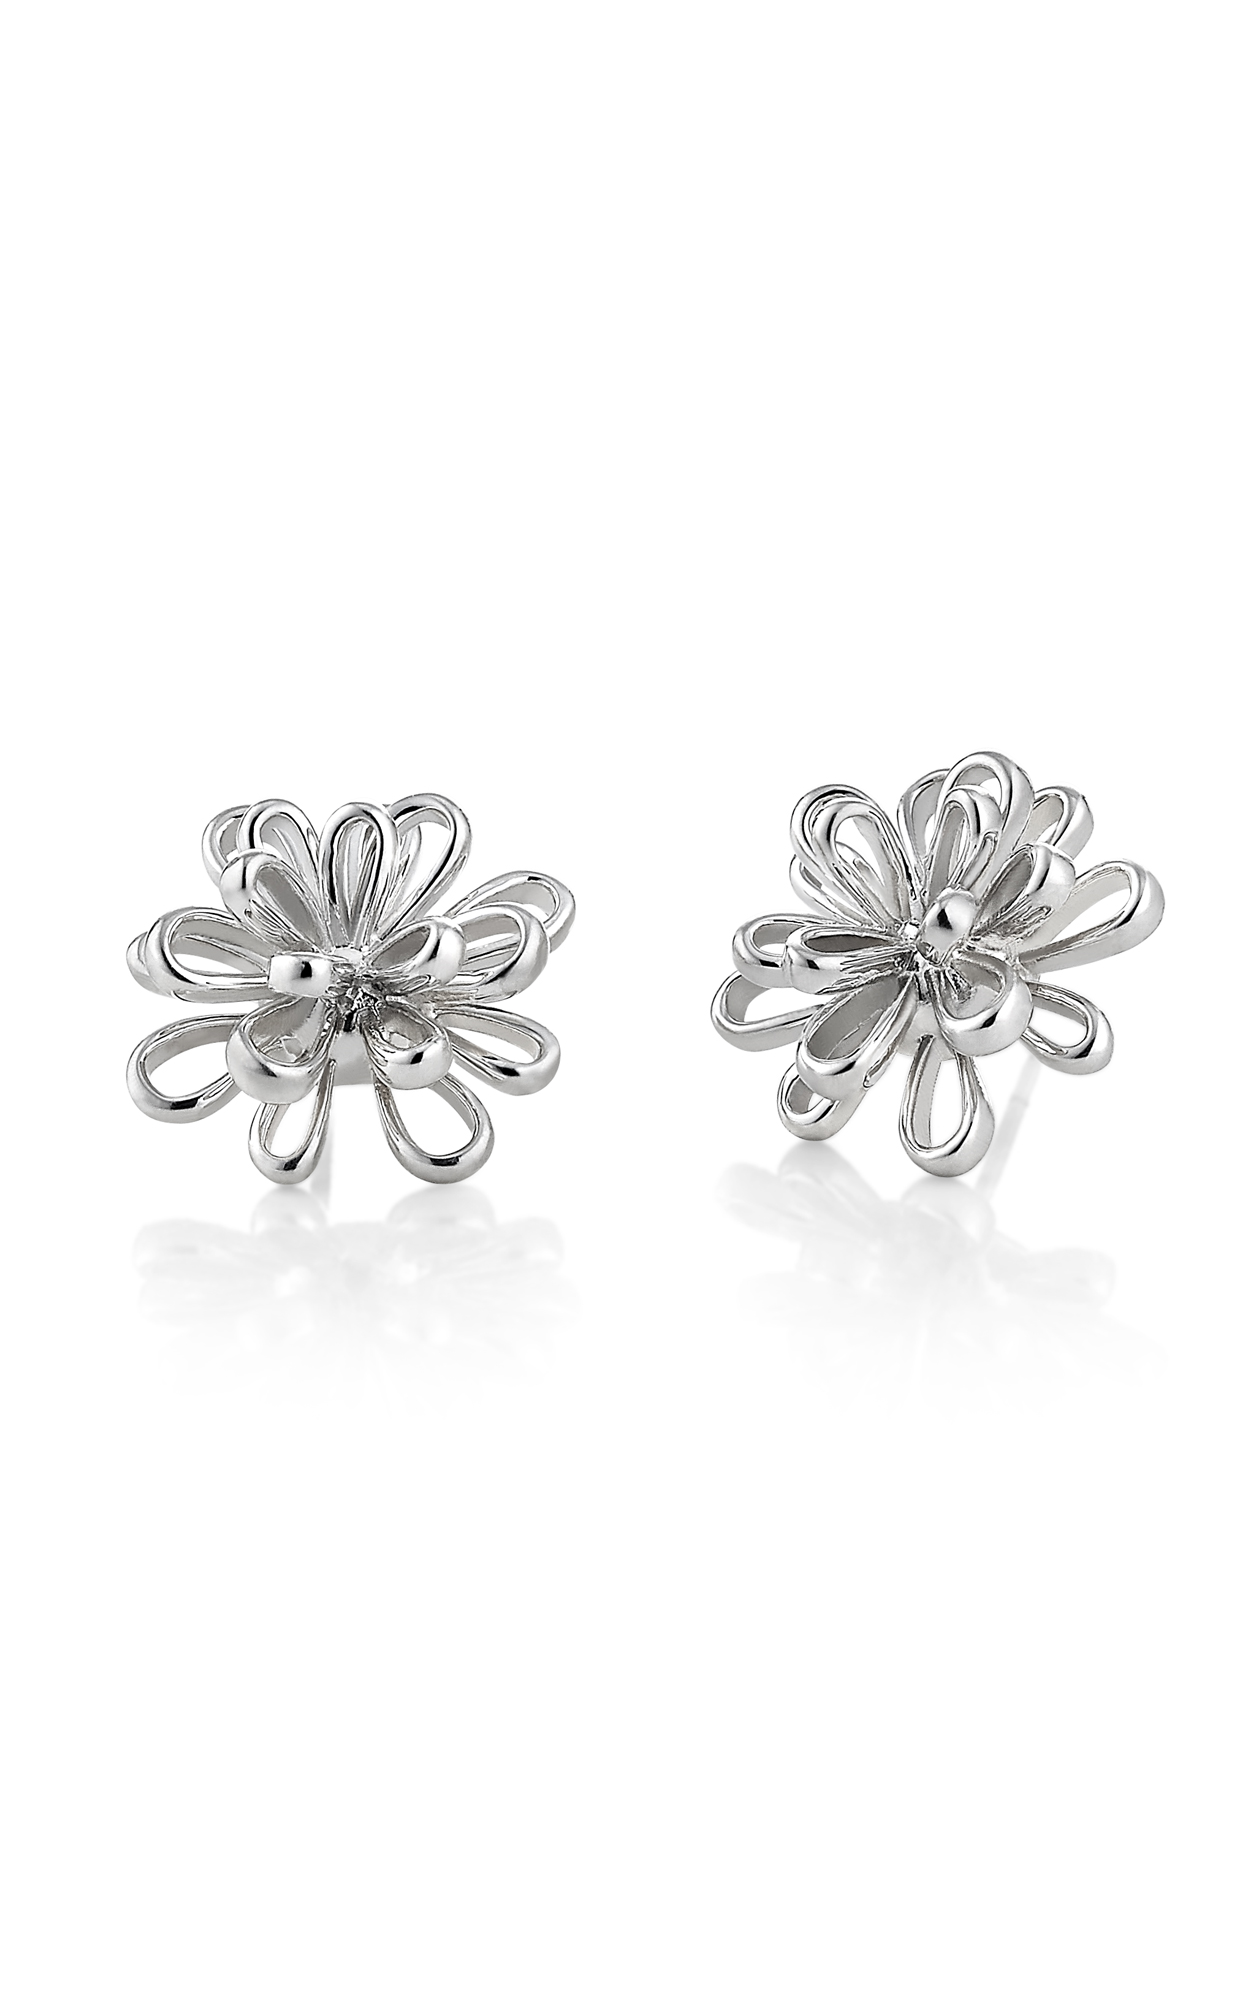 Zina Contemporary Earrings B587 product image